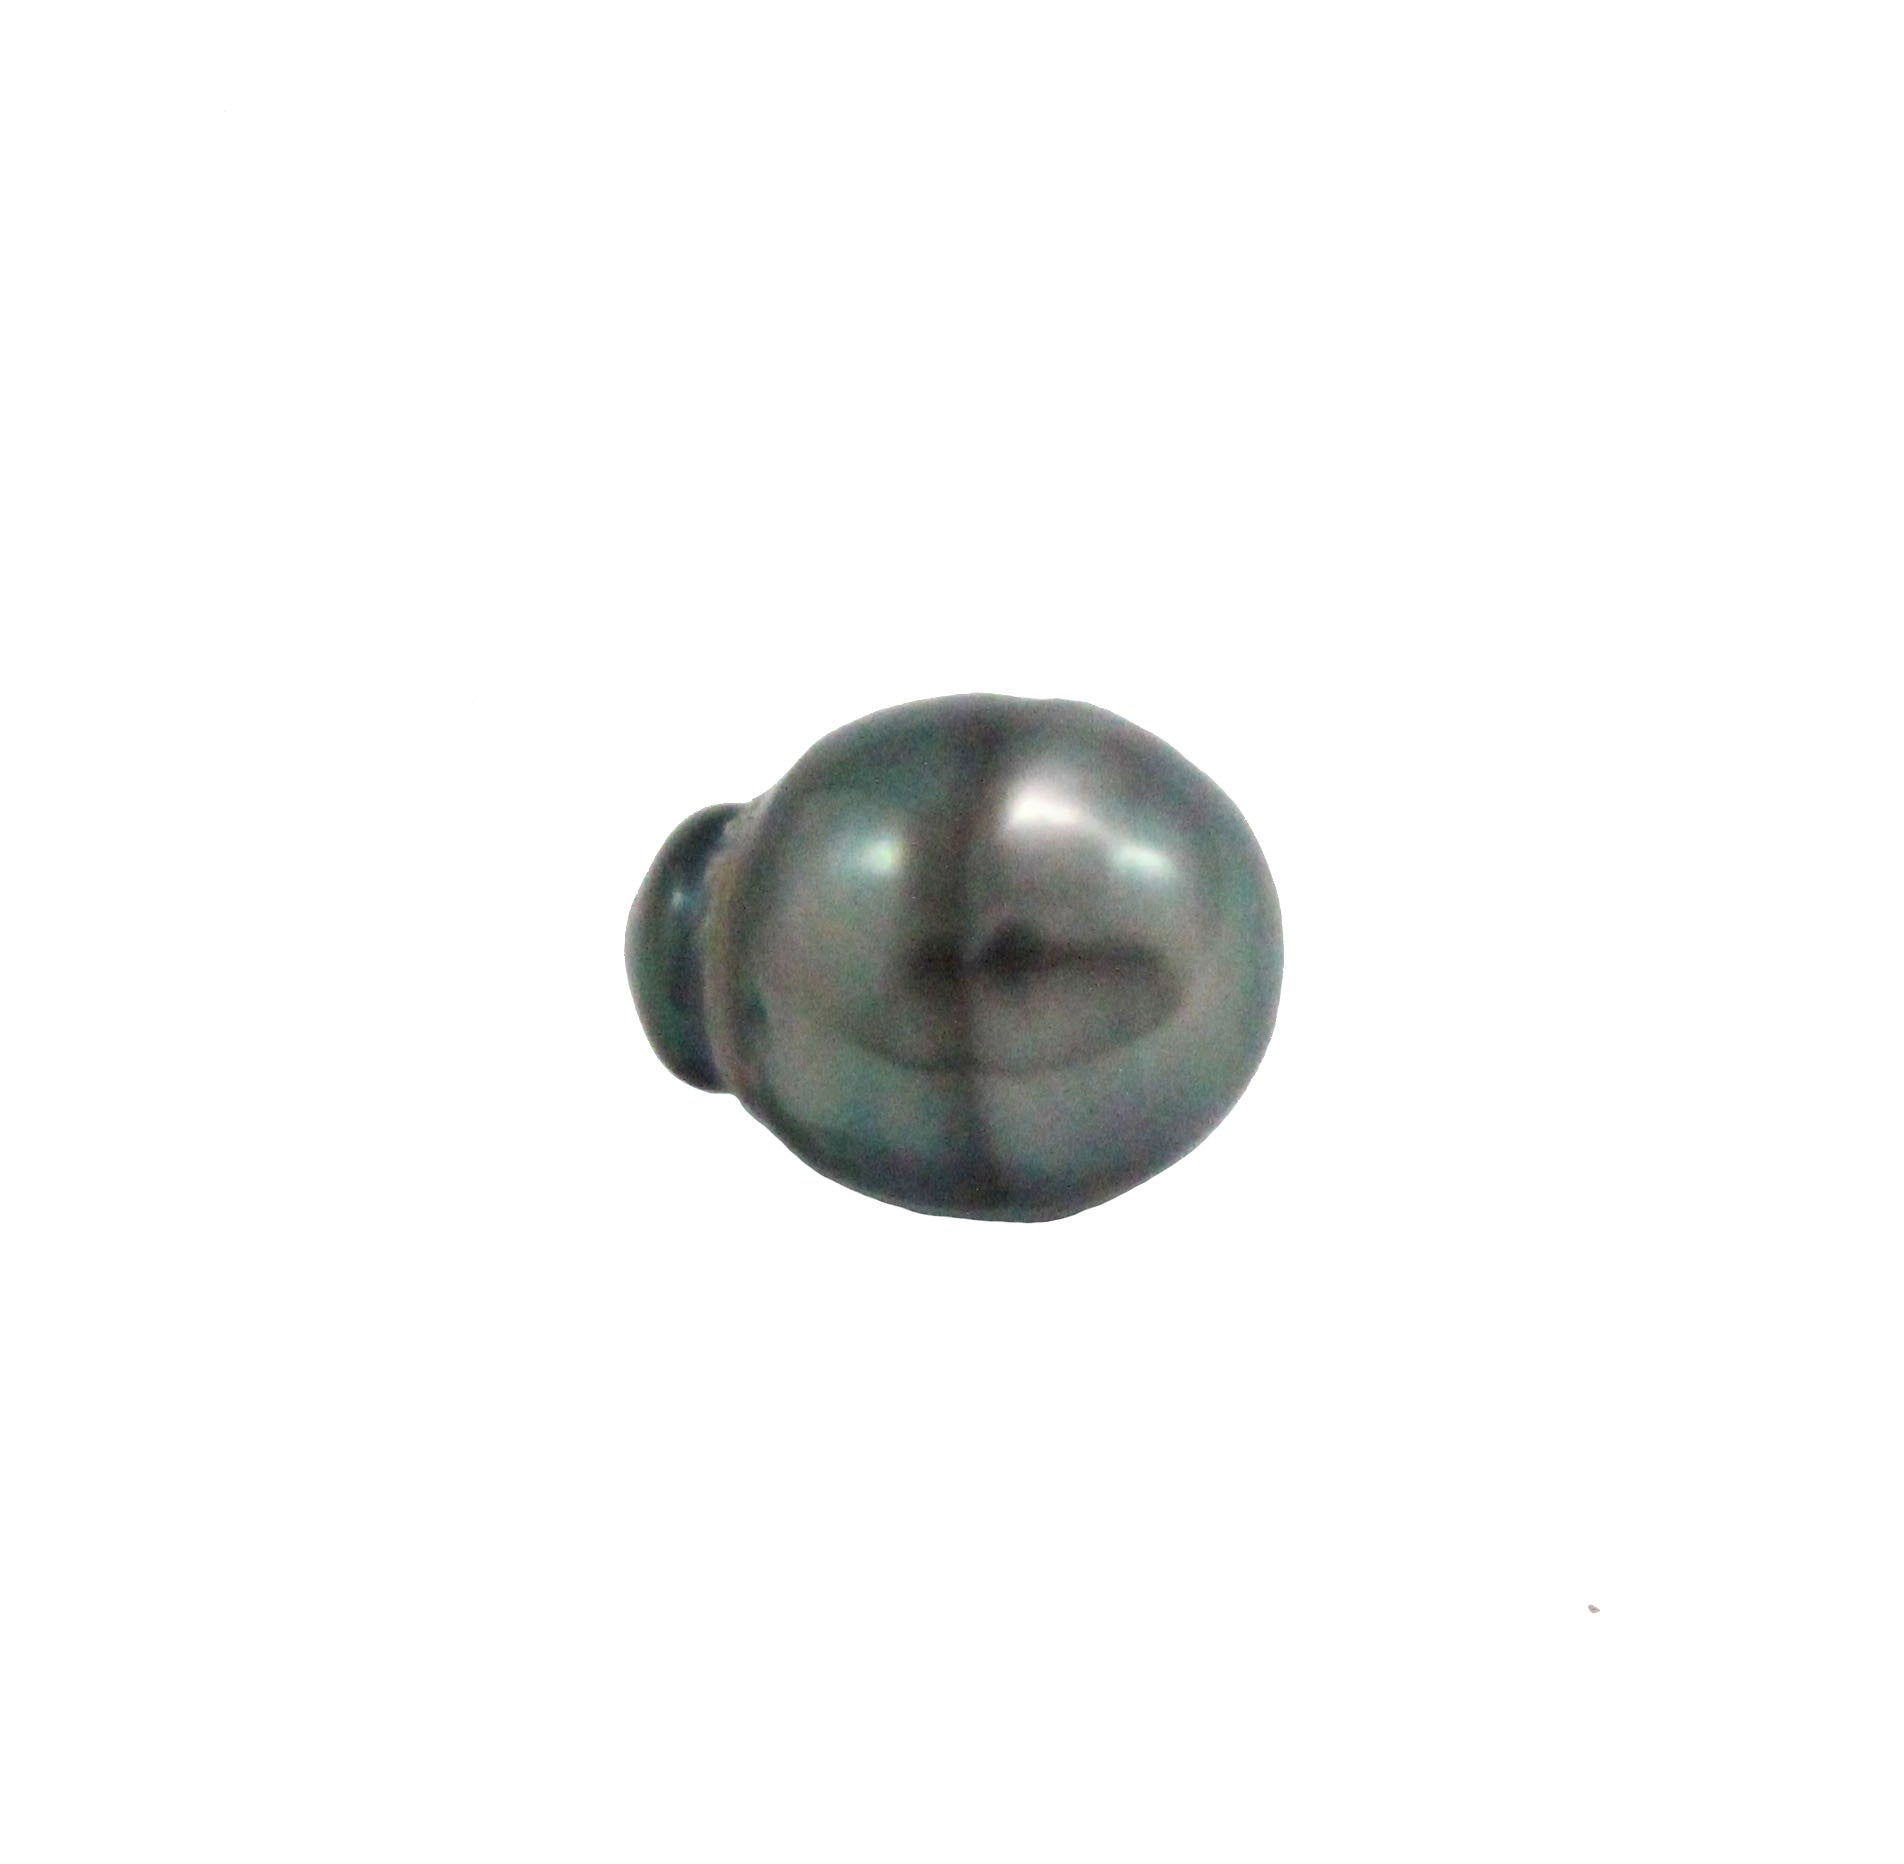 Tahitian pearl undrilled 1.05gr mm 11.12x8.6mm - Purchase only with custom order - Sarah Hughes - 2